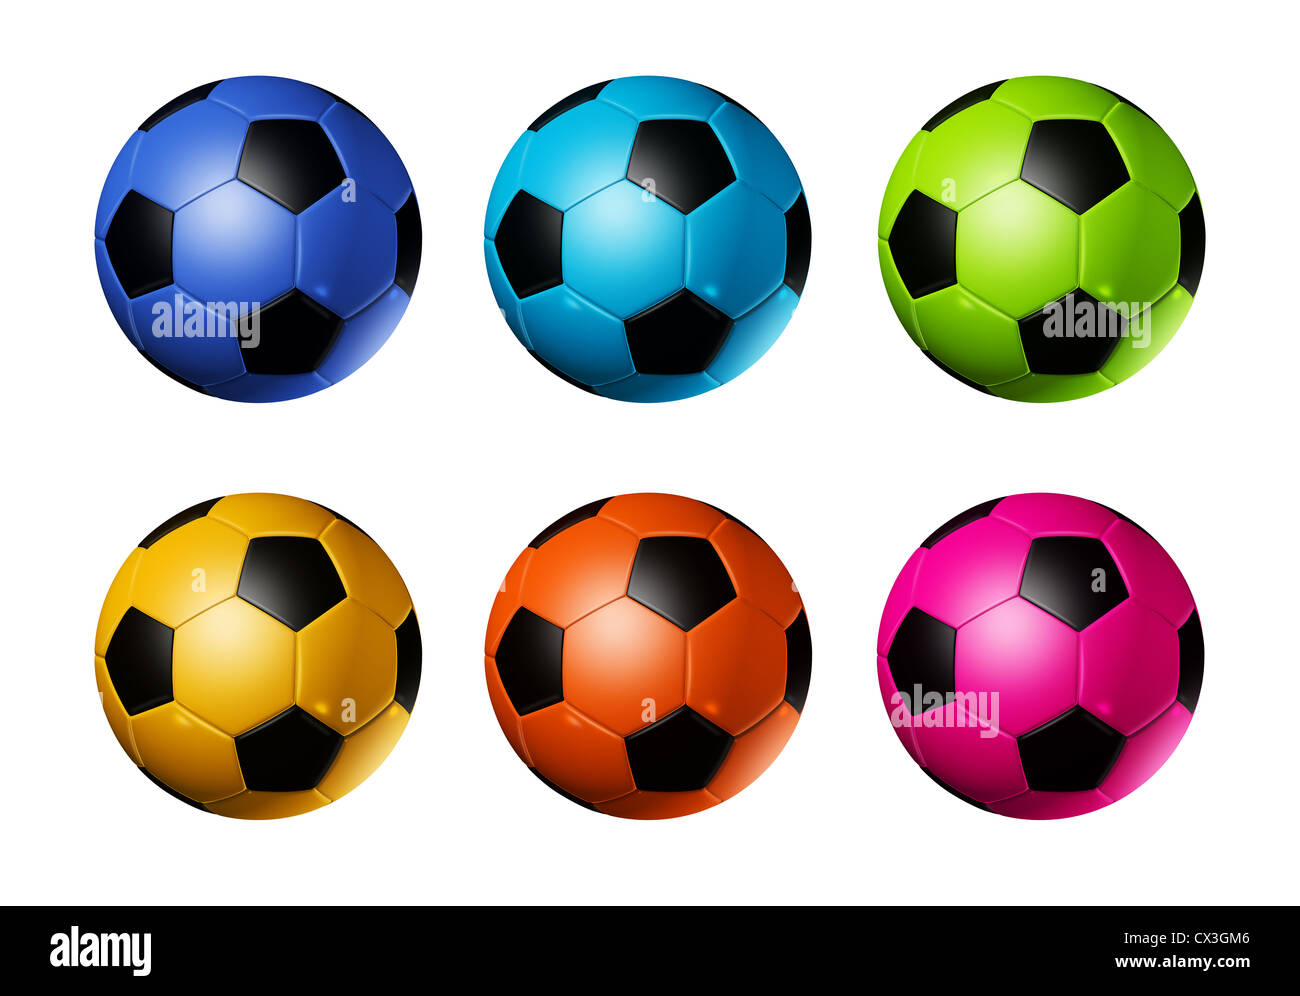 - Blue And White Soccer Balls Cut Out Stock Images & Pictures - Alamy